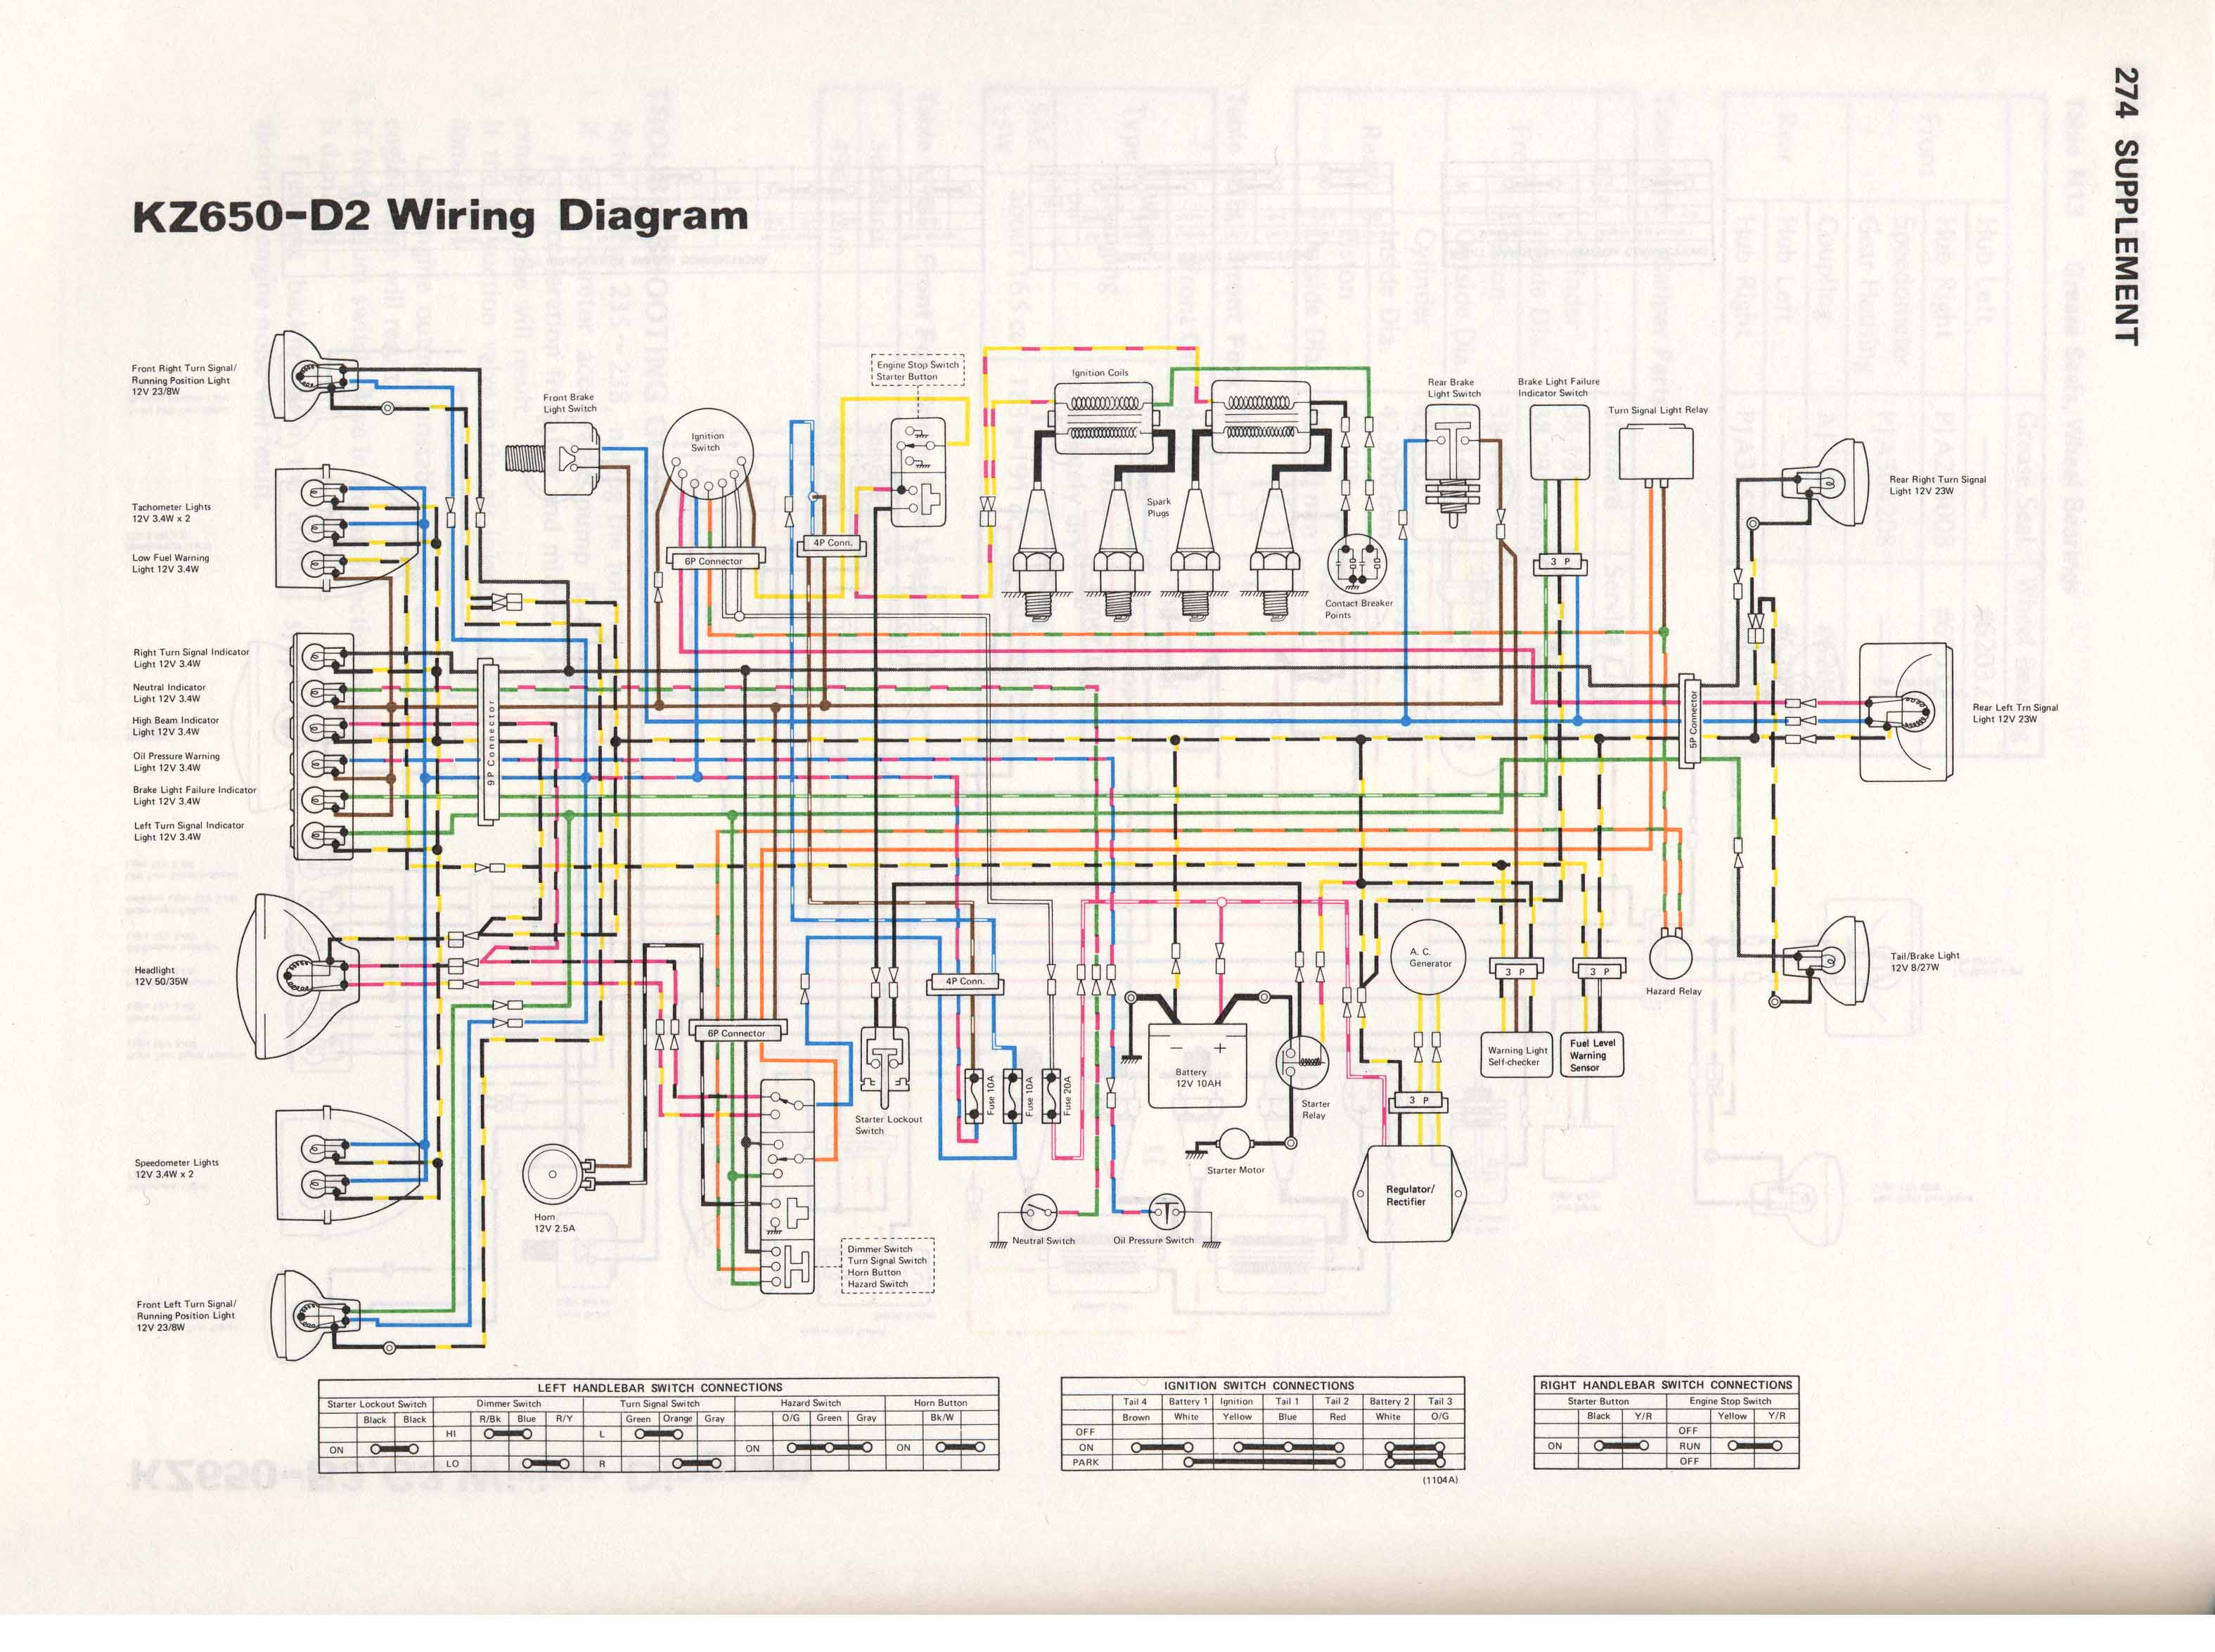 1978 Kawasaki Wiring Diagrams Harness 90 Schematic Kz650 Info Kl 250 Diagram